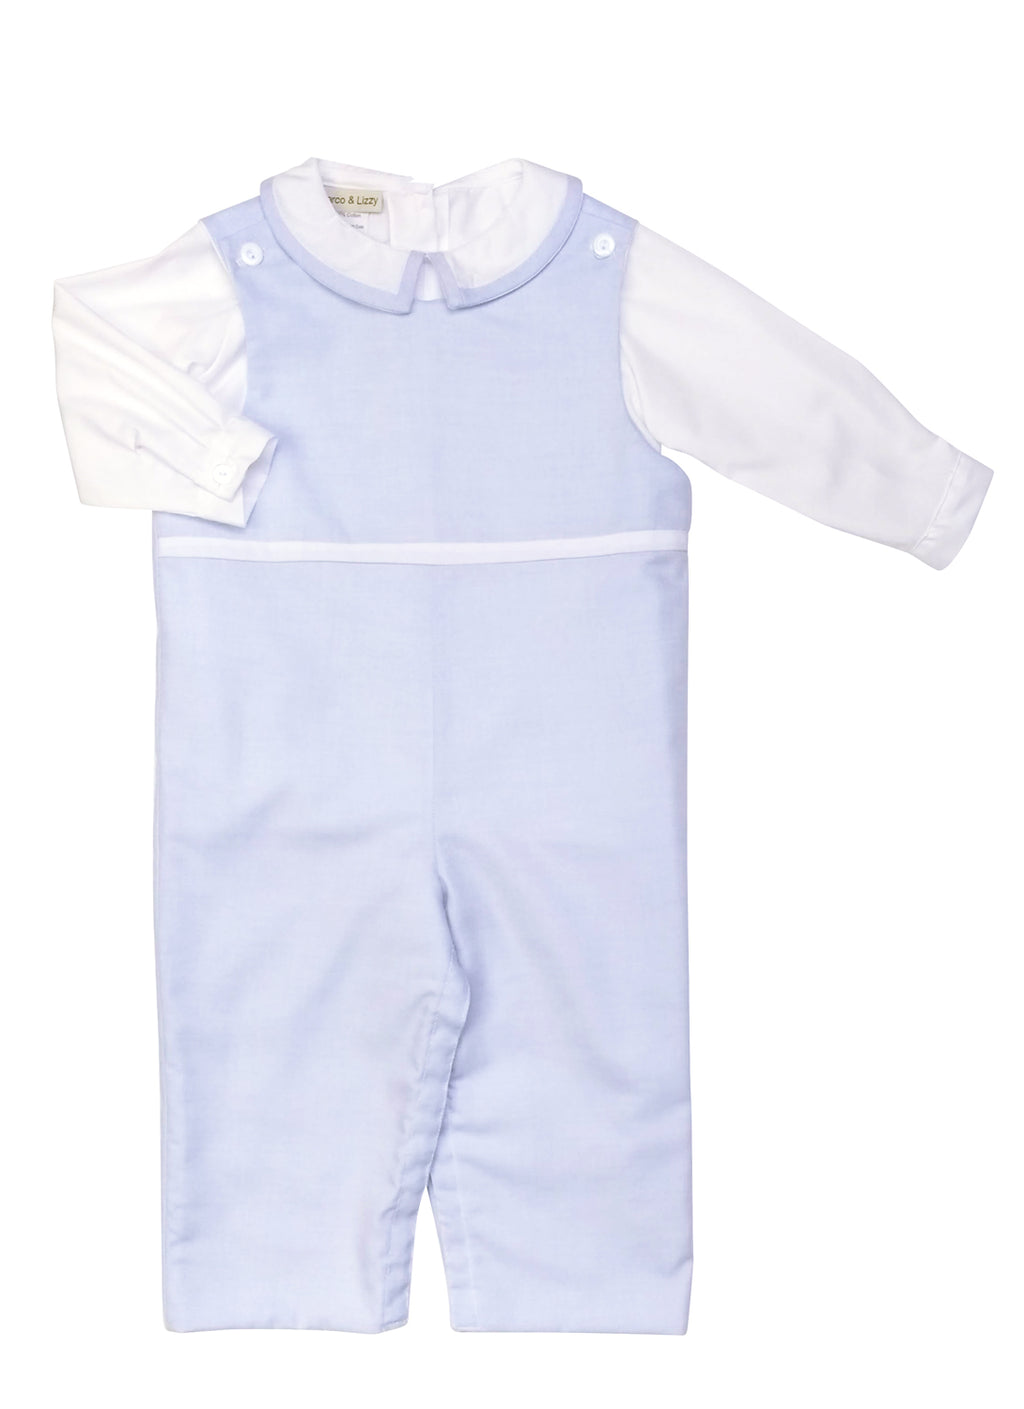 Todd Baby Boys Blue Viella Overalls Set - Little Threads Inc. Children's Clothing